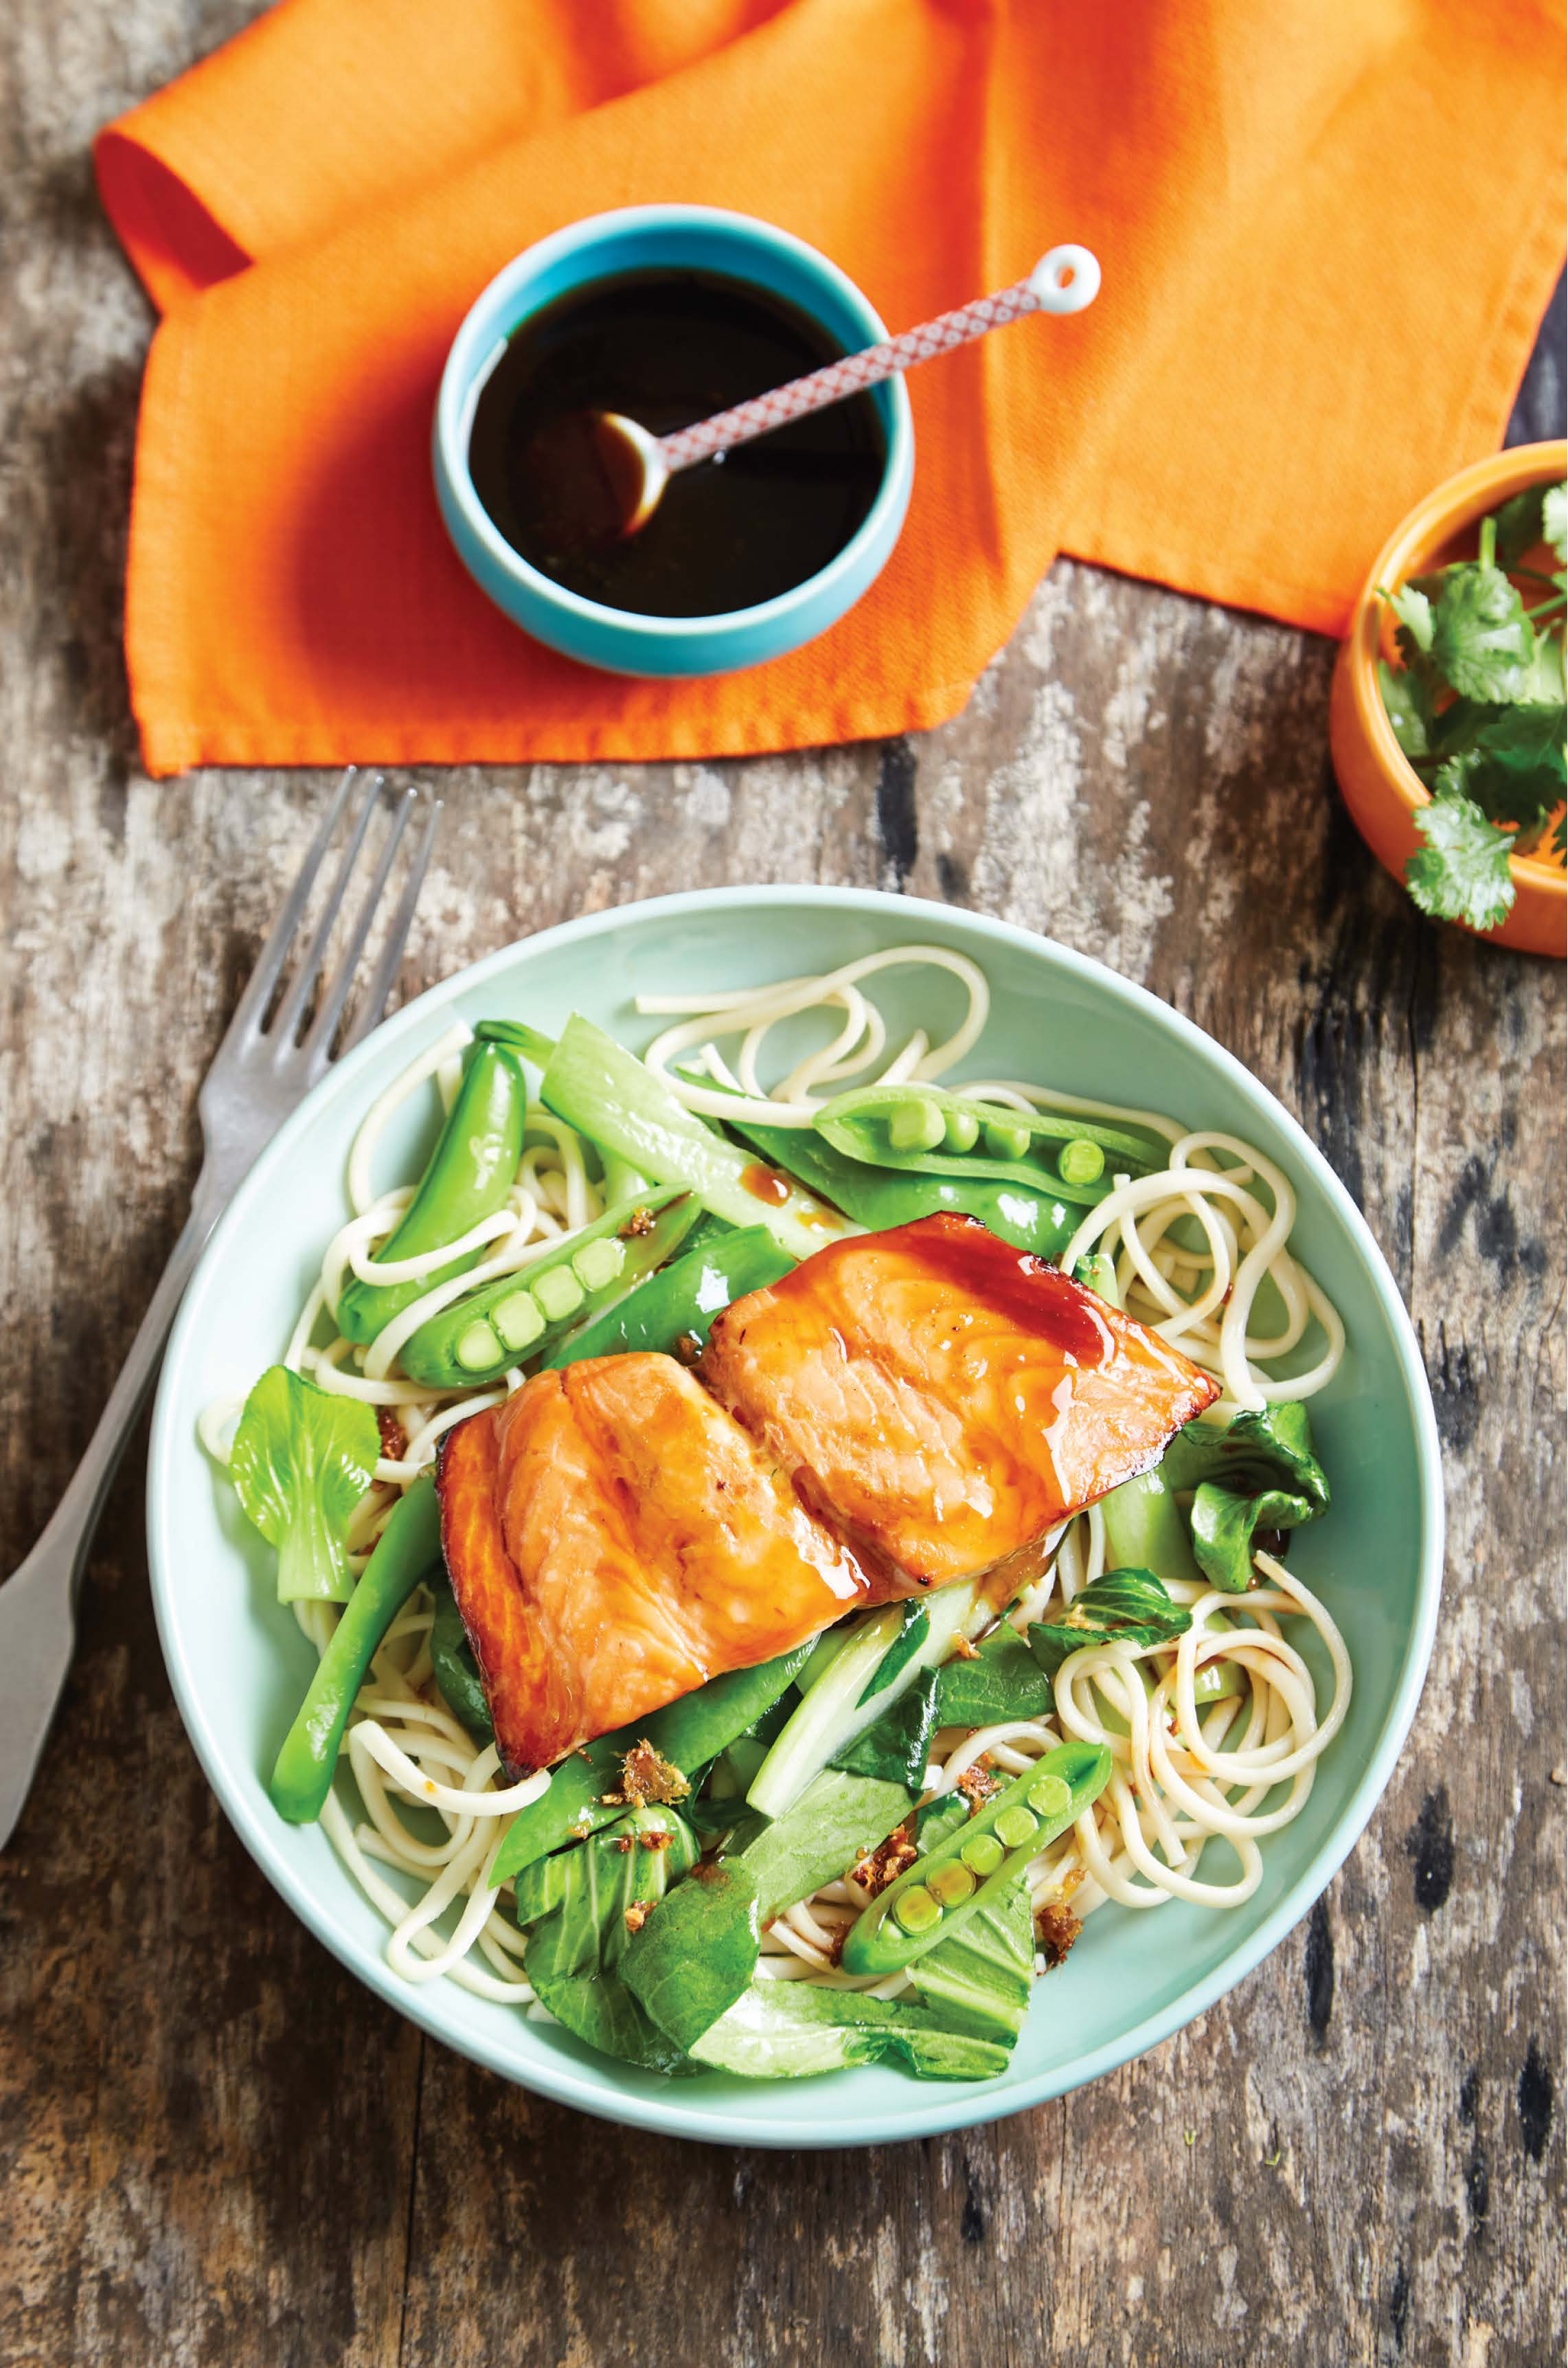 Teriyaki salmon with udon noodles and stir‑fried vegetables